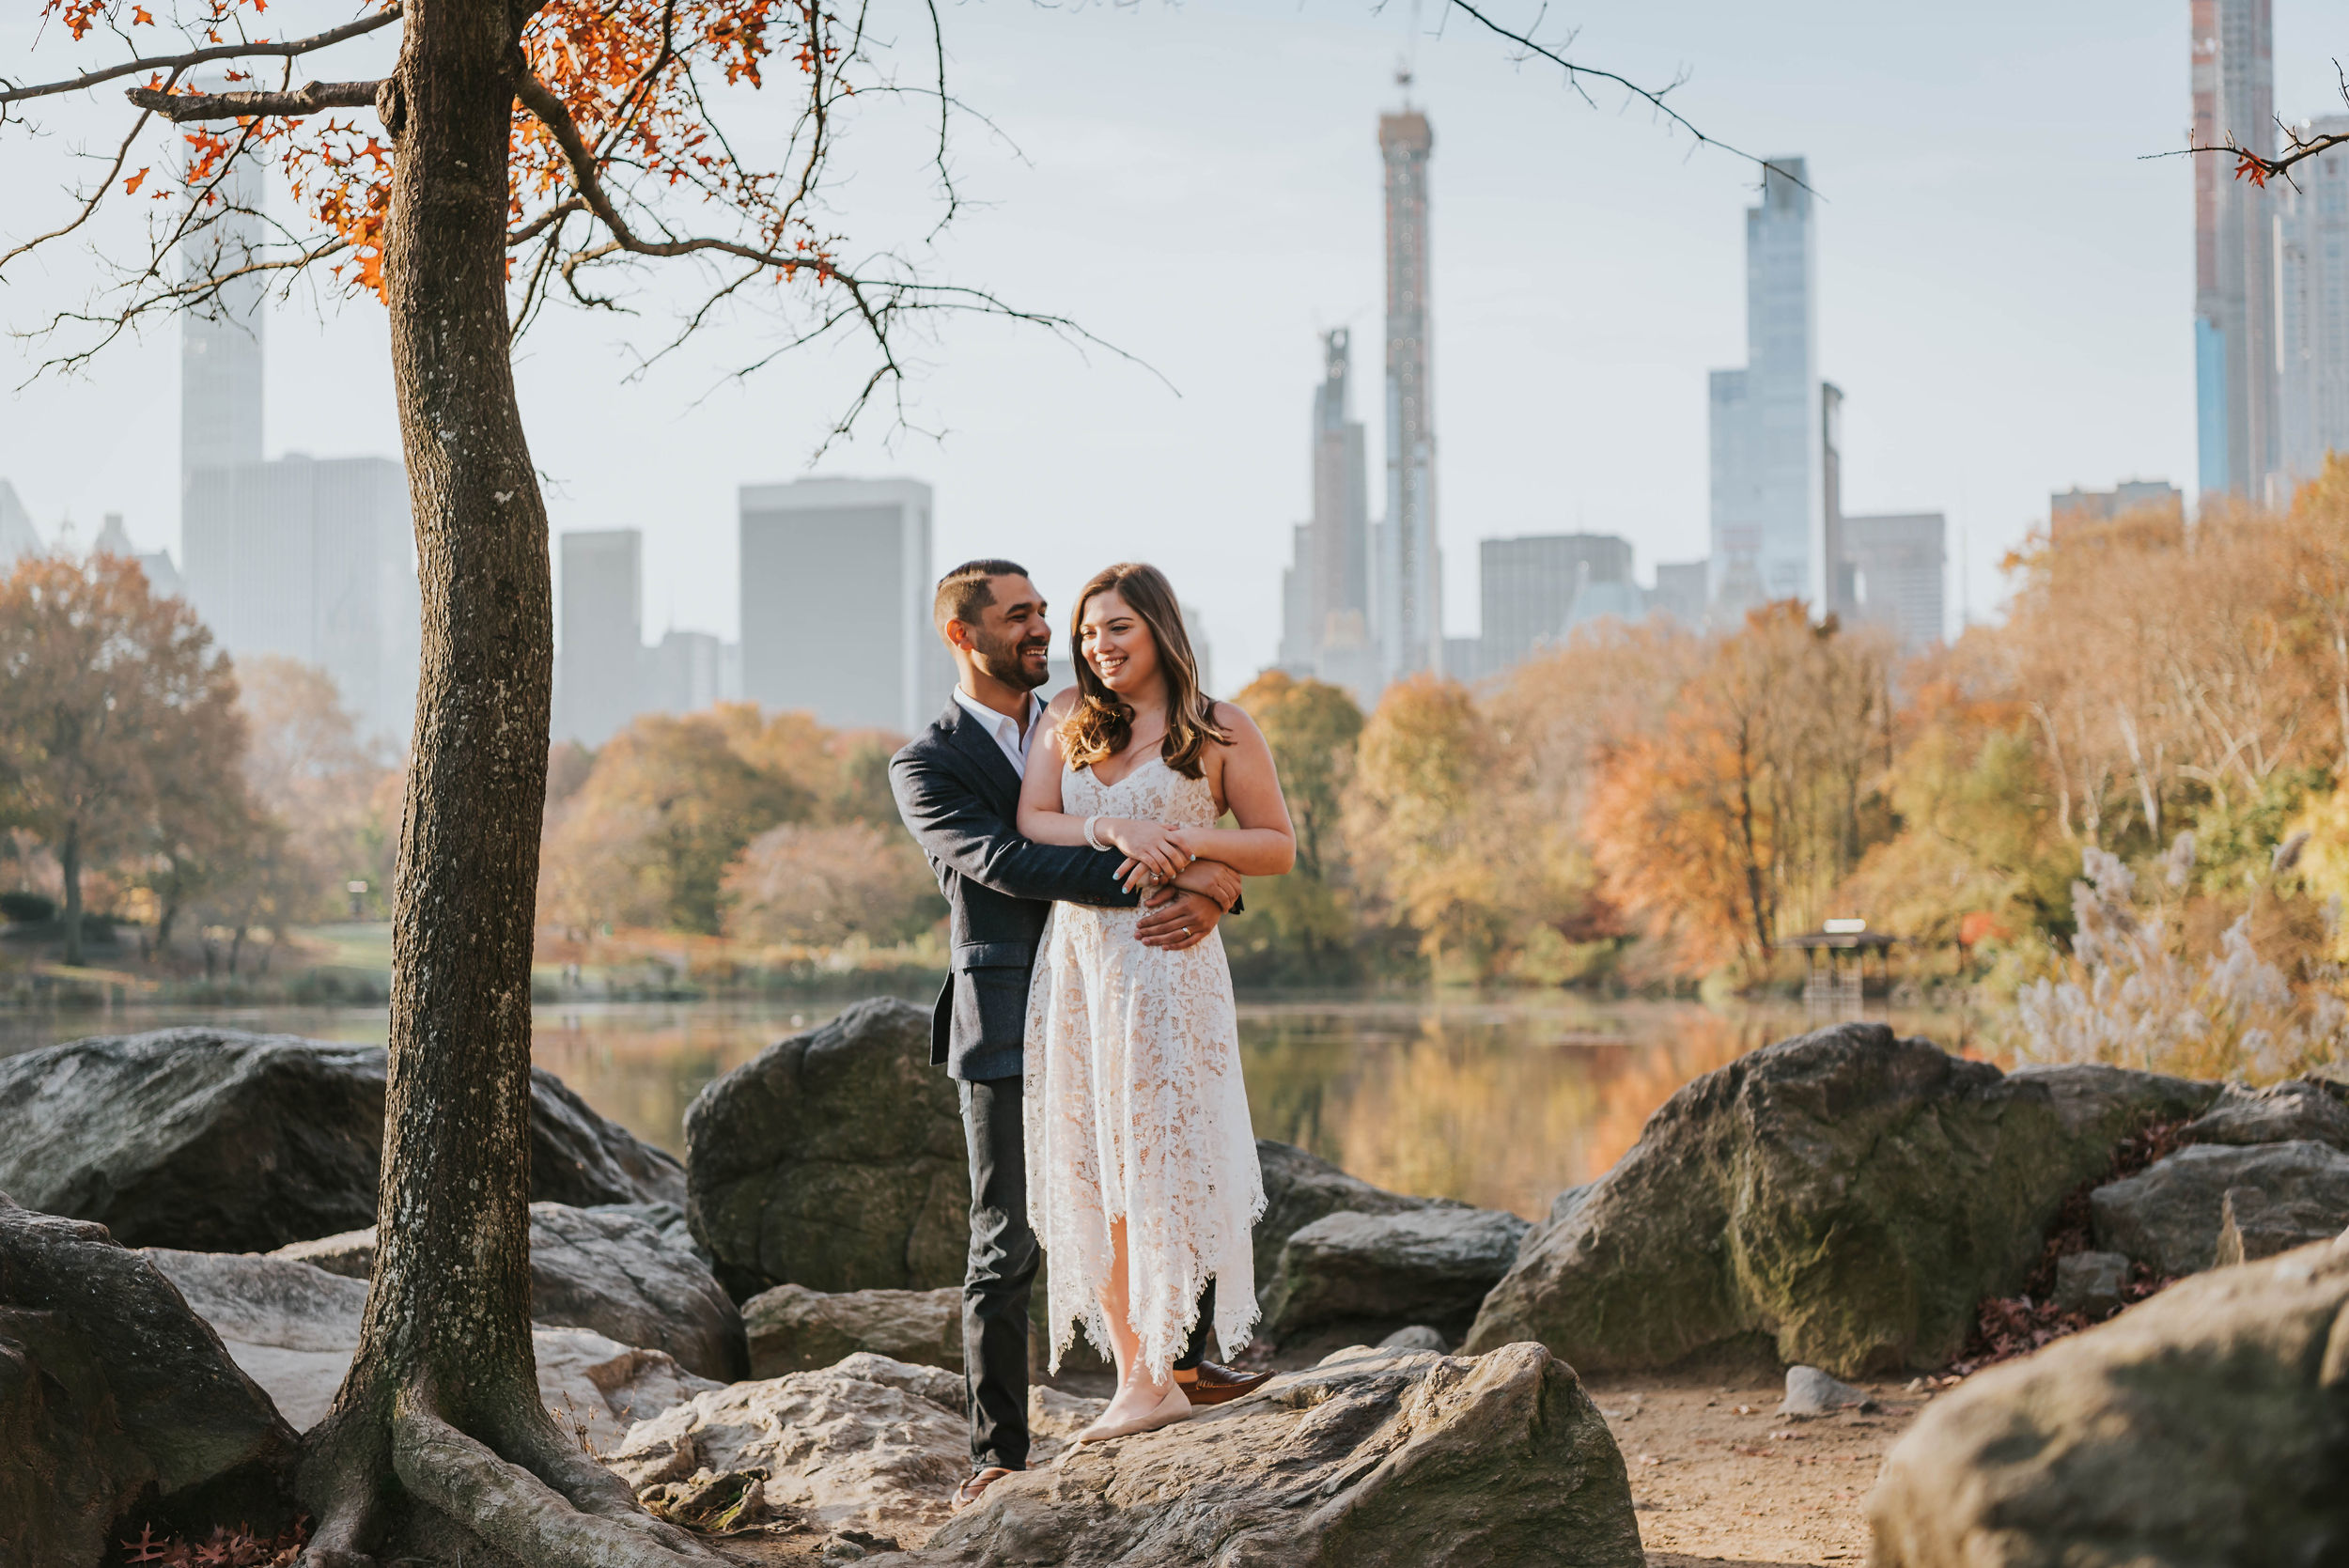 Rebecca and Darryn - Central Park Elopement NYC Manhattan 09.jpg